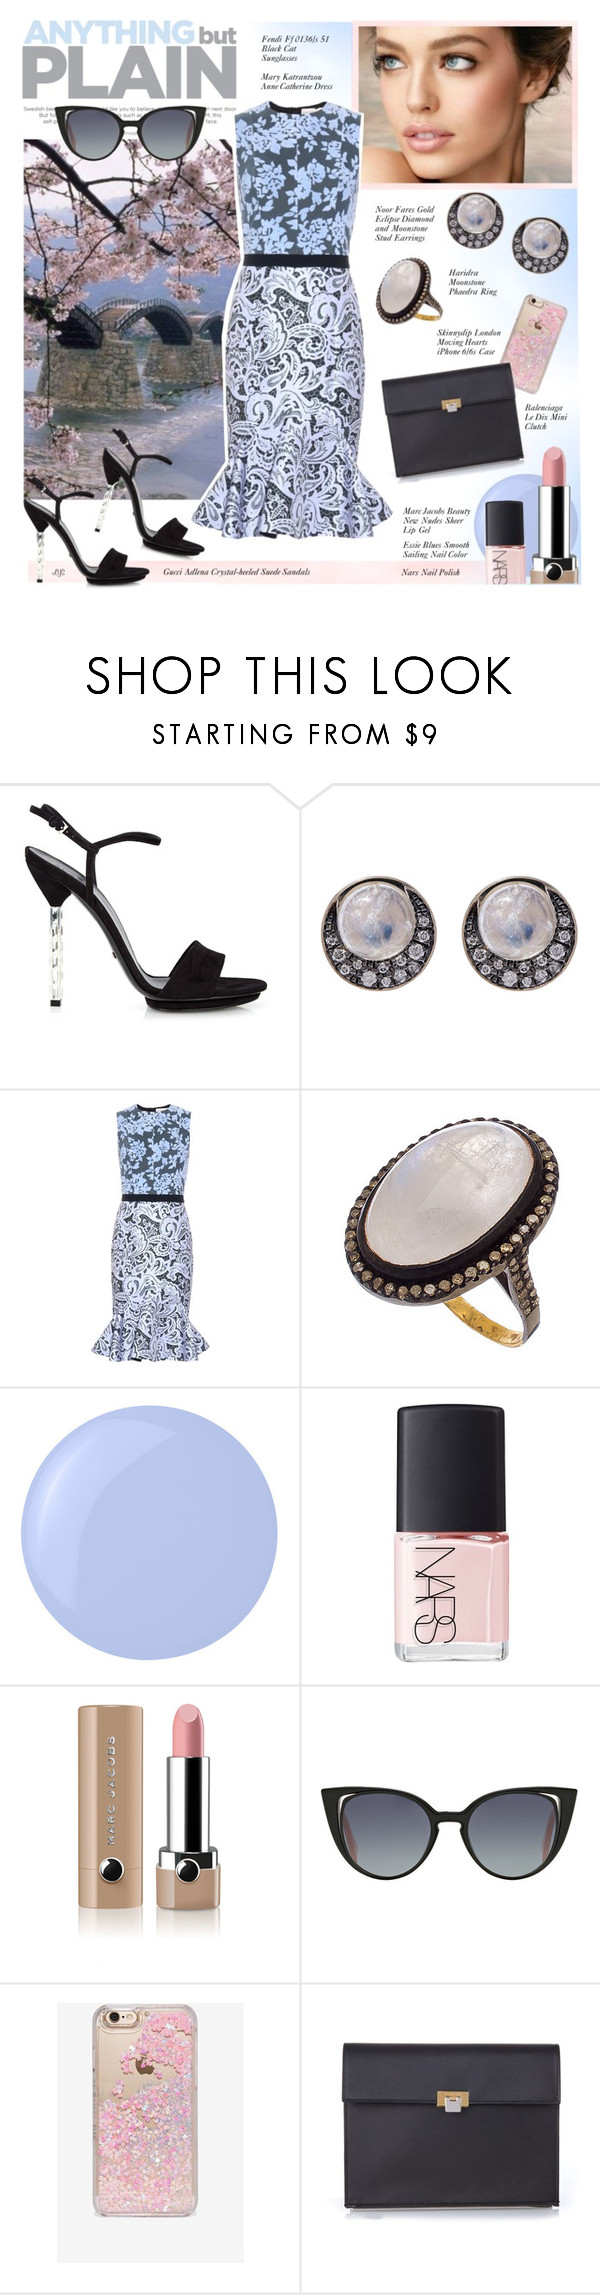 """""""Untitled #966"""" by louise-stuart ❤ liked on Polyvore featuring Gucci, Calvin Klein, Noor Fares, Mary Katrantzou, Haridra, Essie, NARS Cosmetics, Marc Jacobs, Fendi and Skinnydip"""